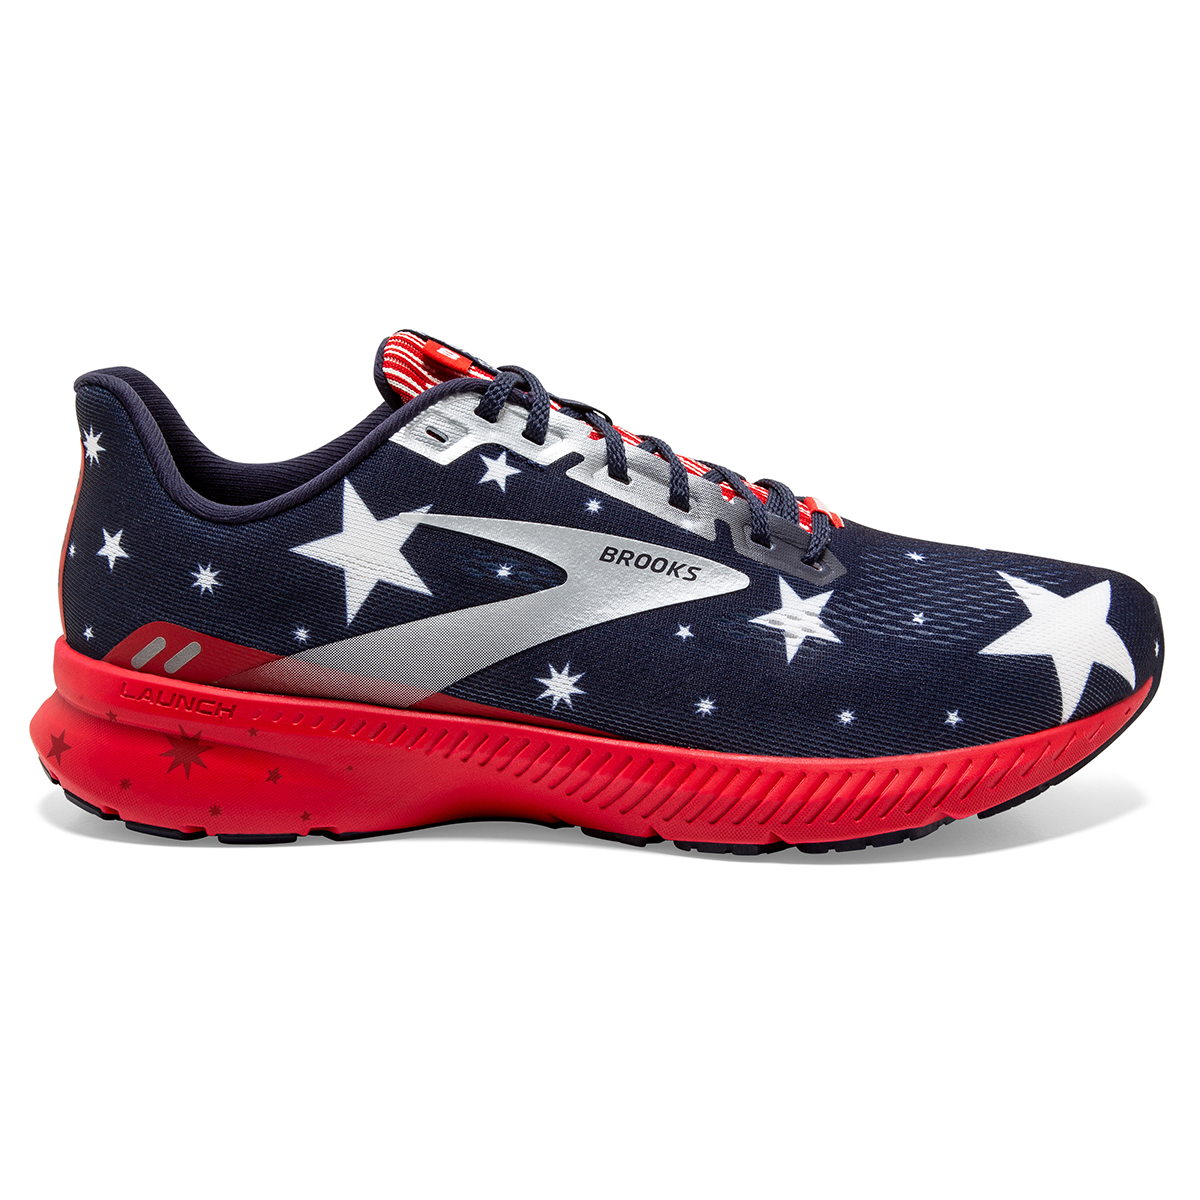 Women's Brooks Launch 8 Running Shoe - Color: Blue/Red/Silver - Size: 5 - Width: Regular, Blue/Red/Silver, large, image 1